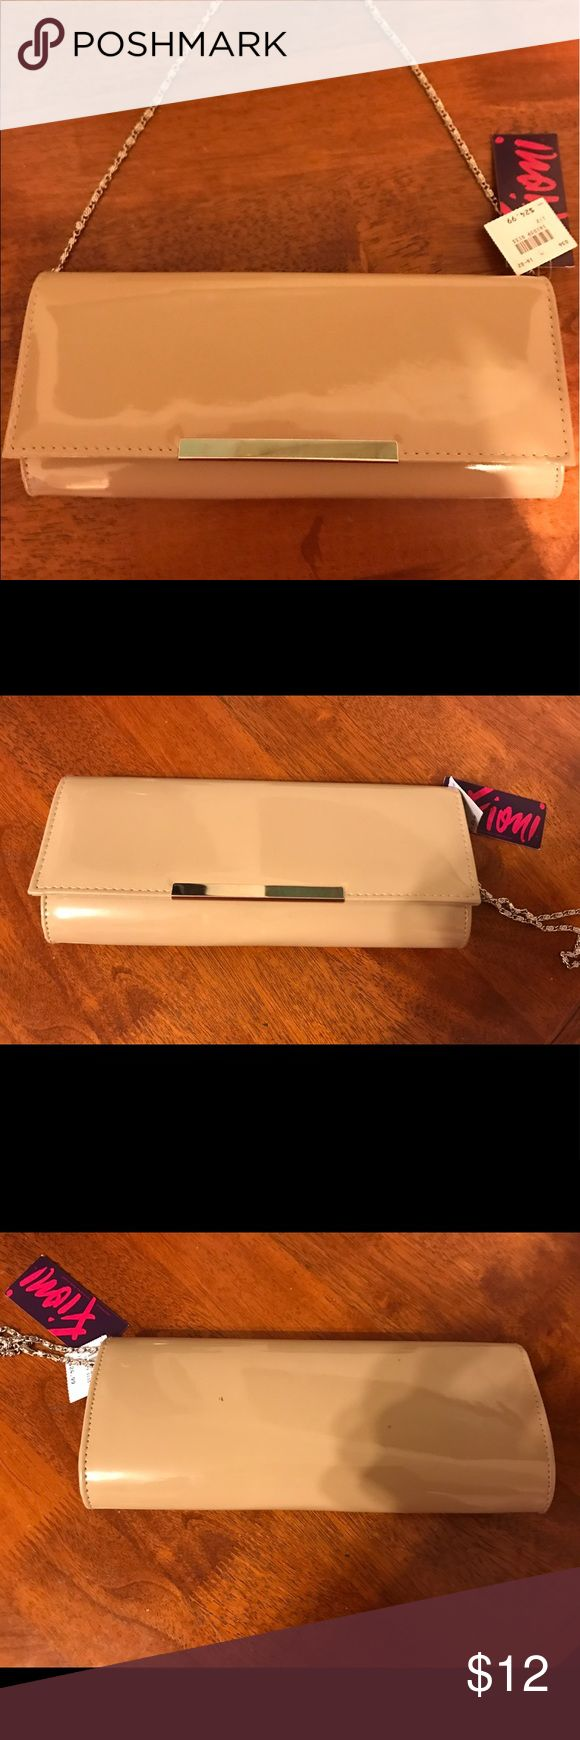 Beige Clutch Bag - NWT Beige Clutch Bag with straps. Patent-leather look, 100 percent vinyl. FIONI Clothing Bags Clutches & Wristlets